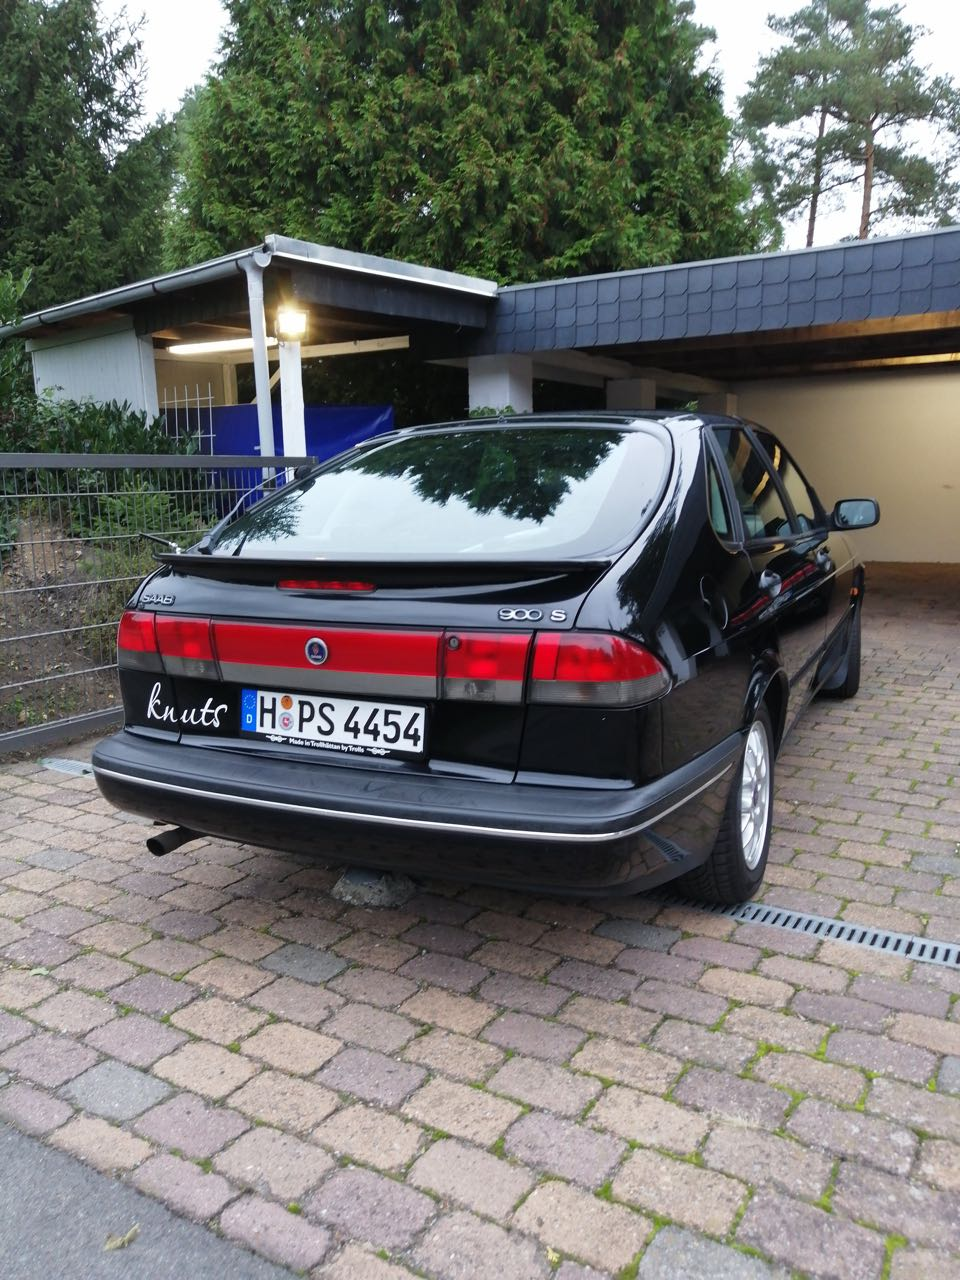 "Saab 900 II ""Knuts"" has more than half a million kilometers on the counter"